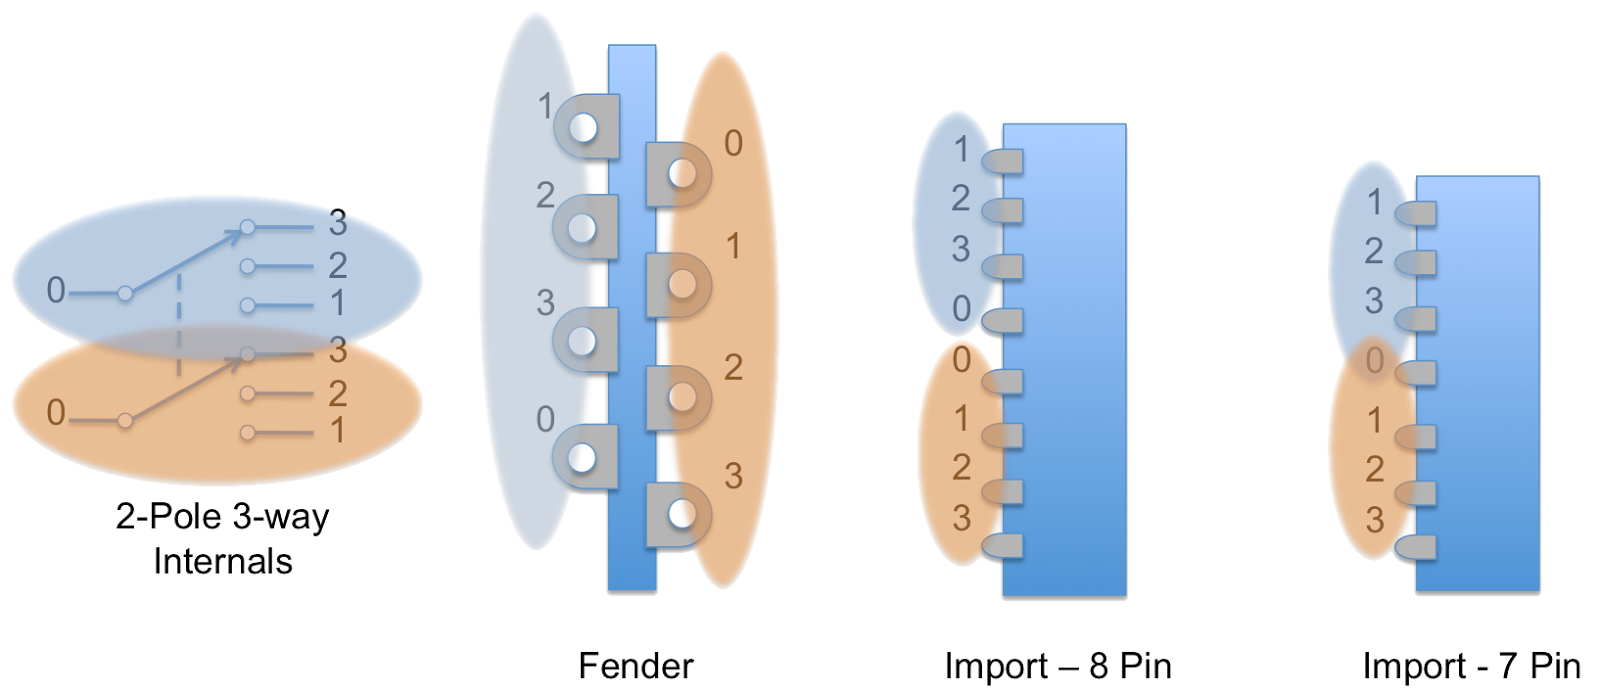 hight resolution of in terms of the fender standard 5 way each set of 4 pins on either side represents a single 3 way pole for the 8 pin import switches the leftmost 4 pins